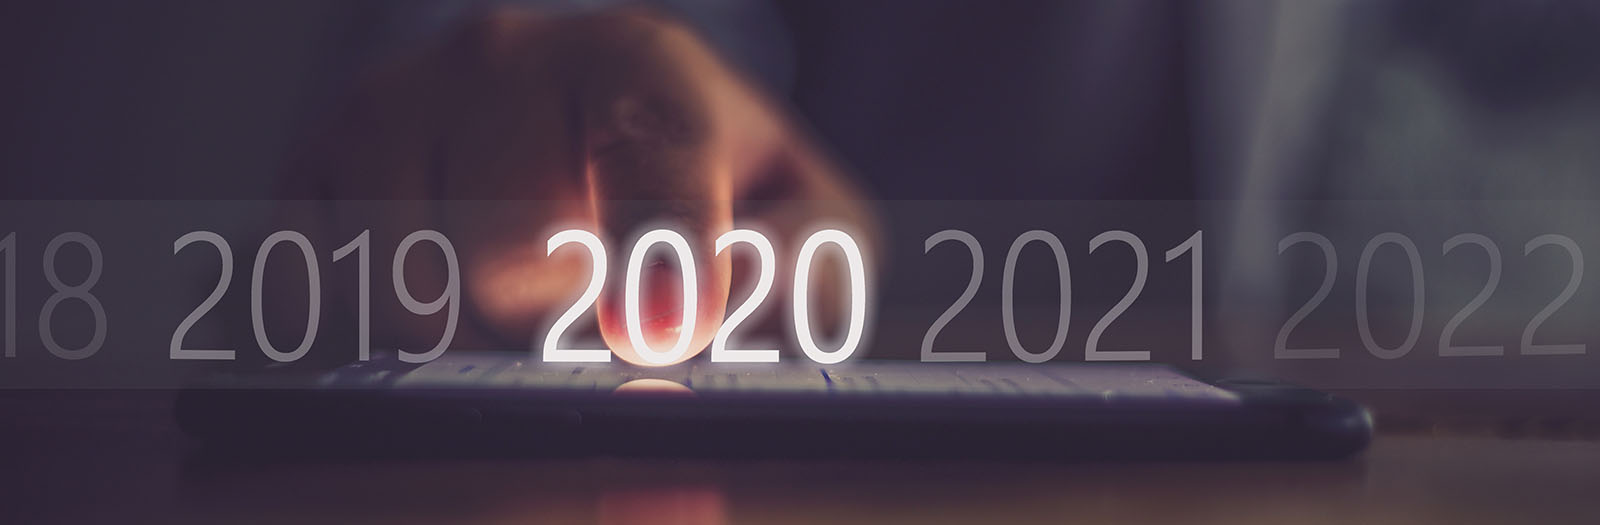 Photo of hand on a keyboard highlighting 2020